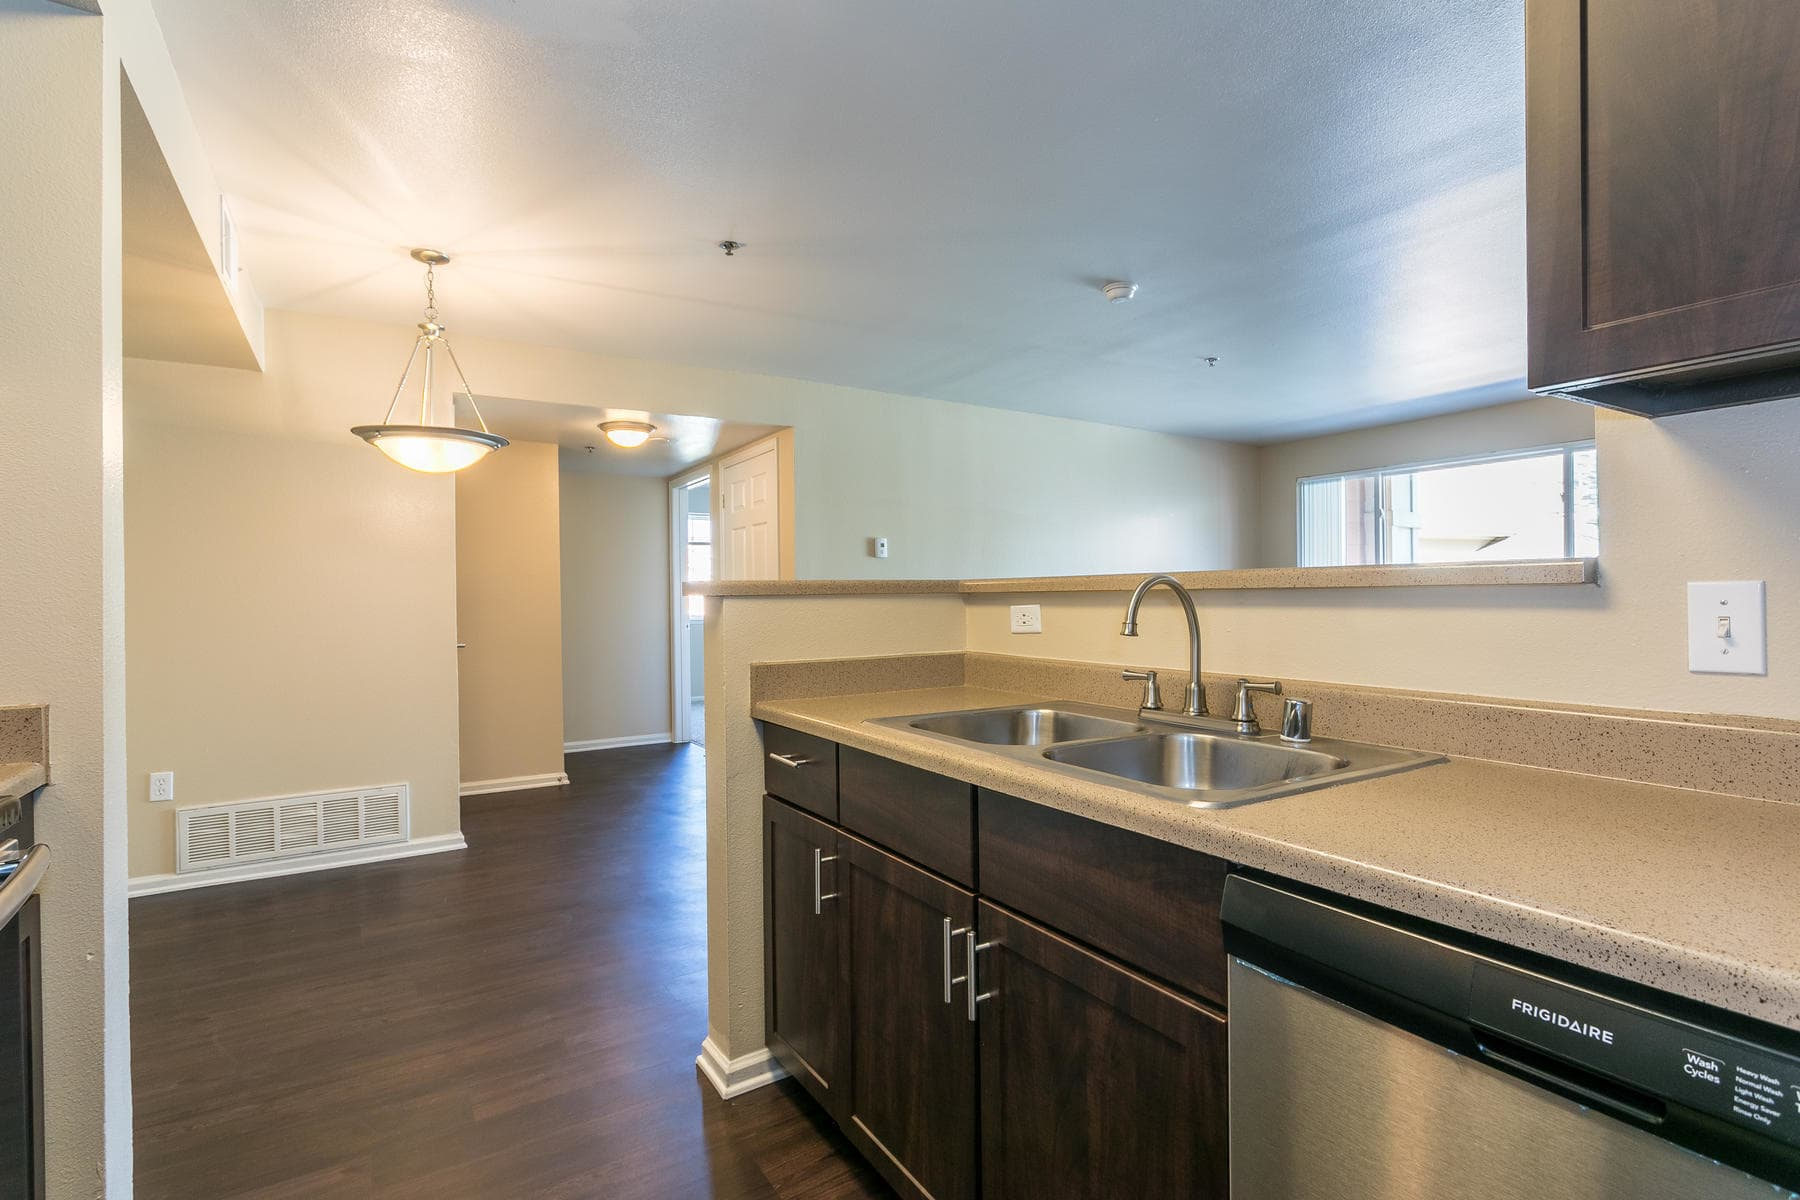 Kitchen/Living Room at The Bluffs at Castle Rock Apartments